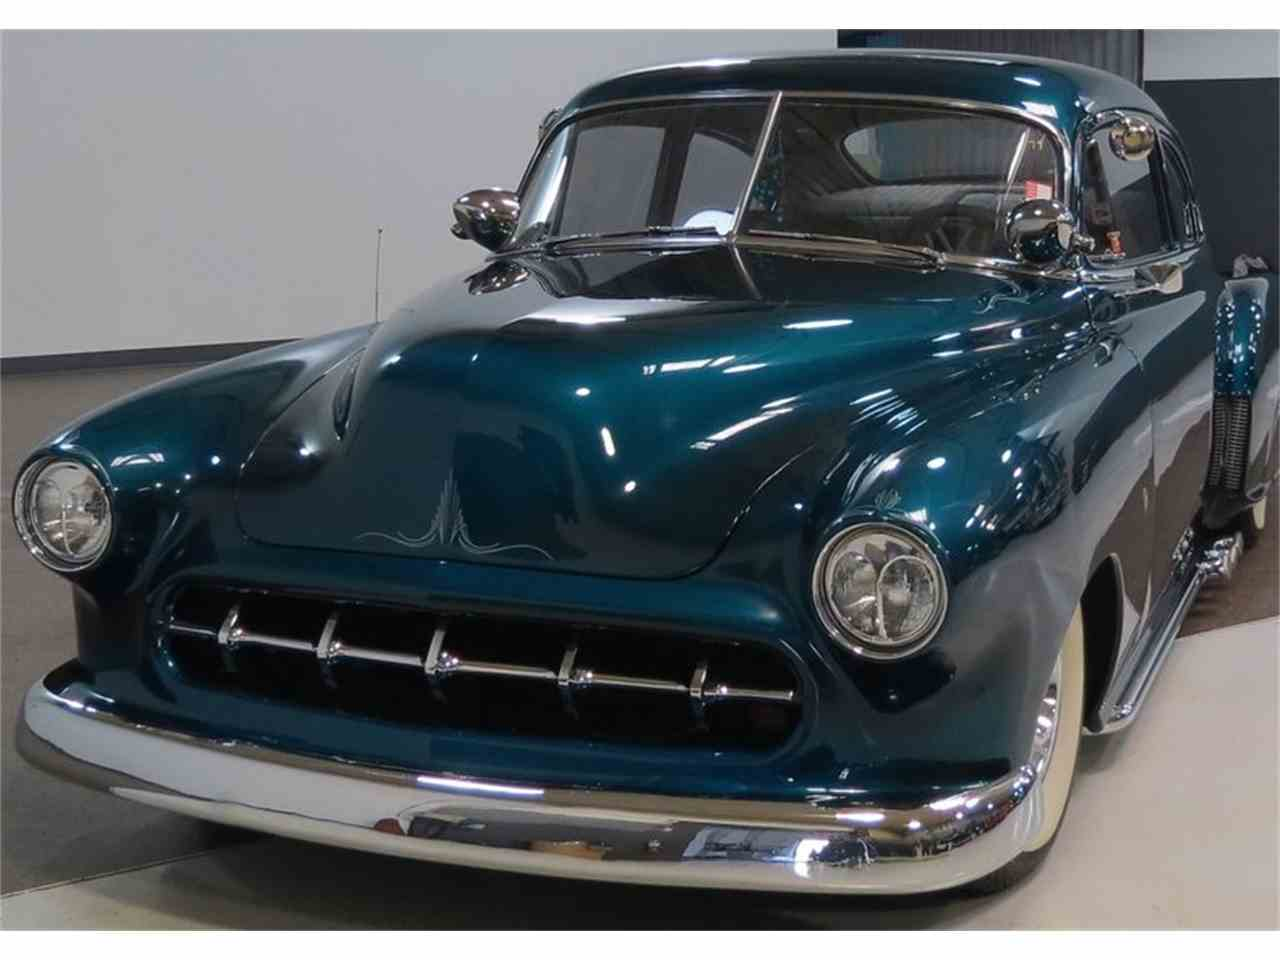 All Chevy 1951 chevrolet fleetline : 1951 Chevrolet Fleetline Frank Livingston The Elegant Relic for ...